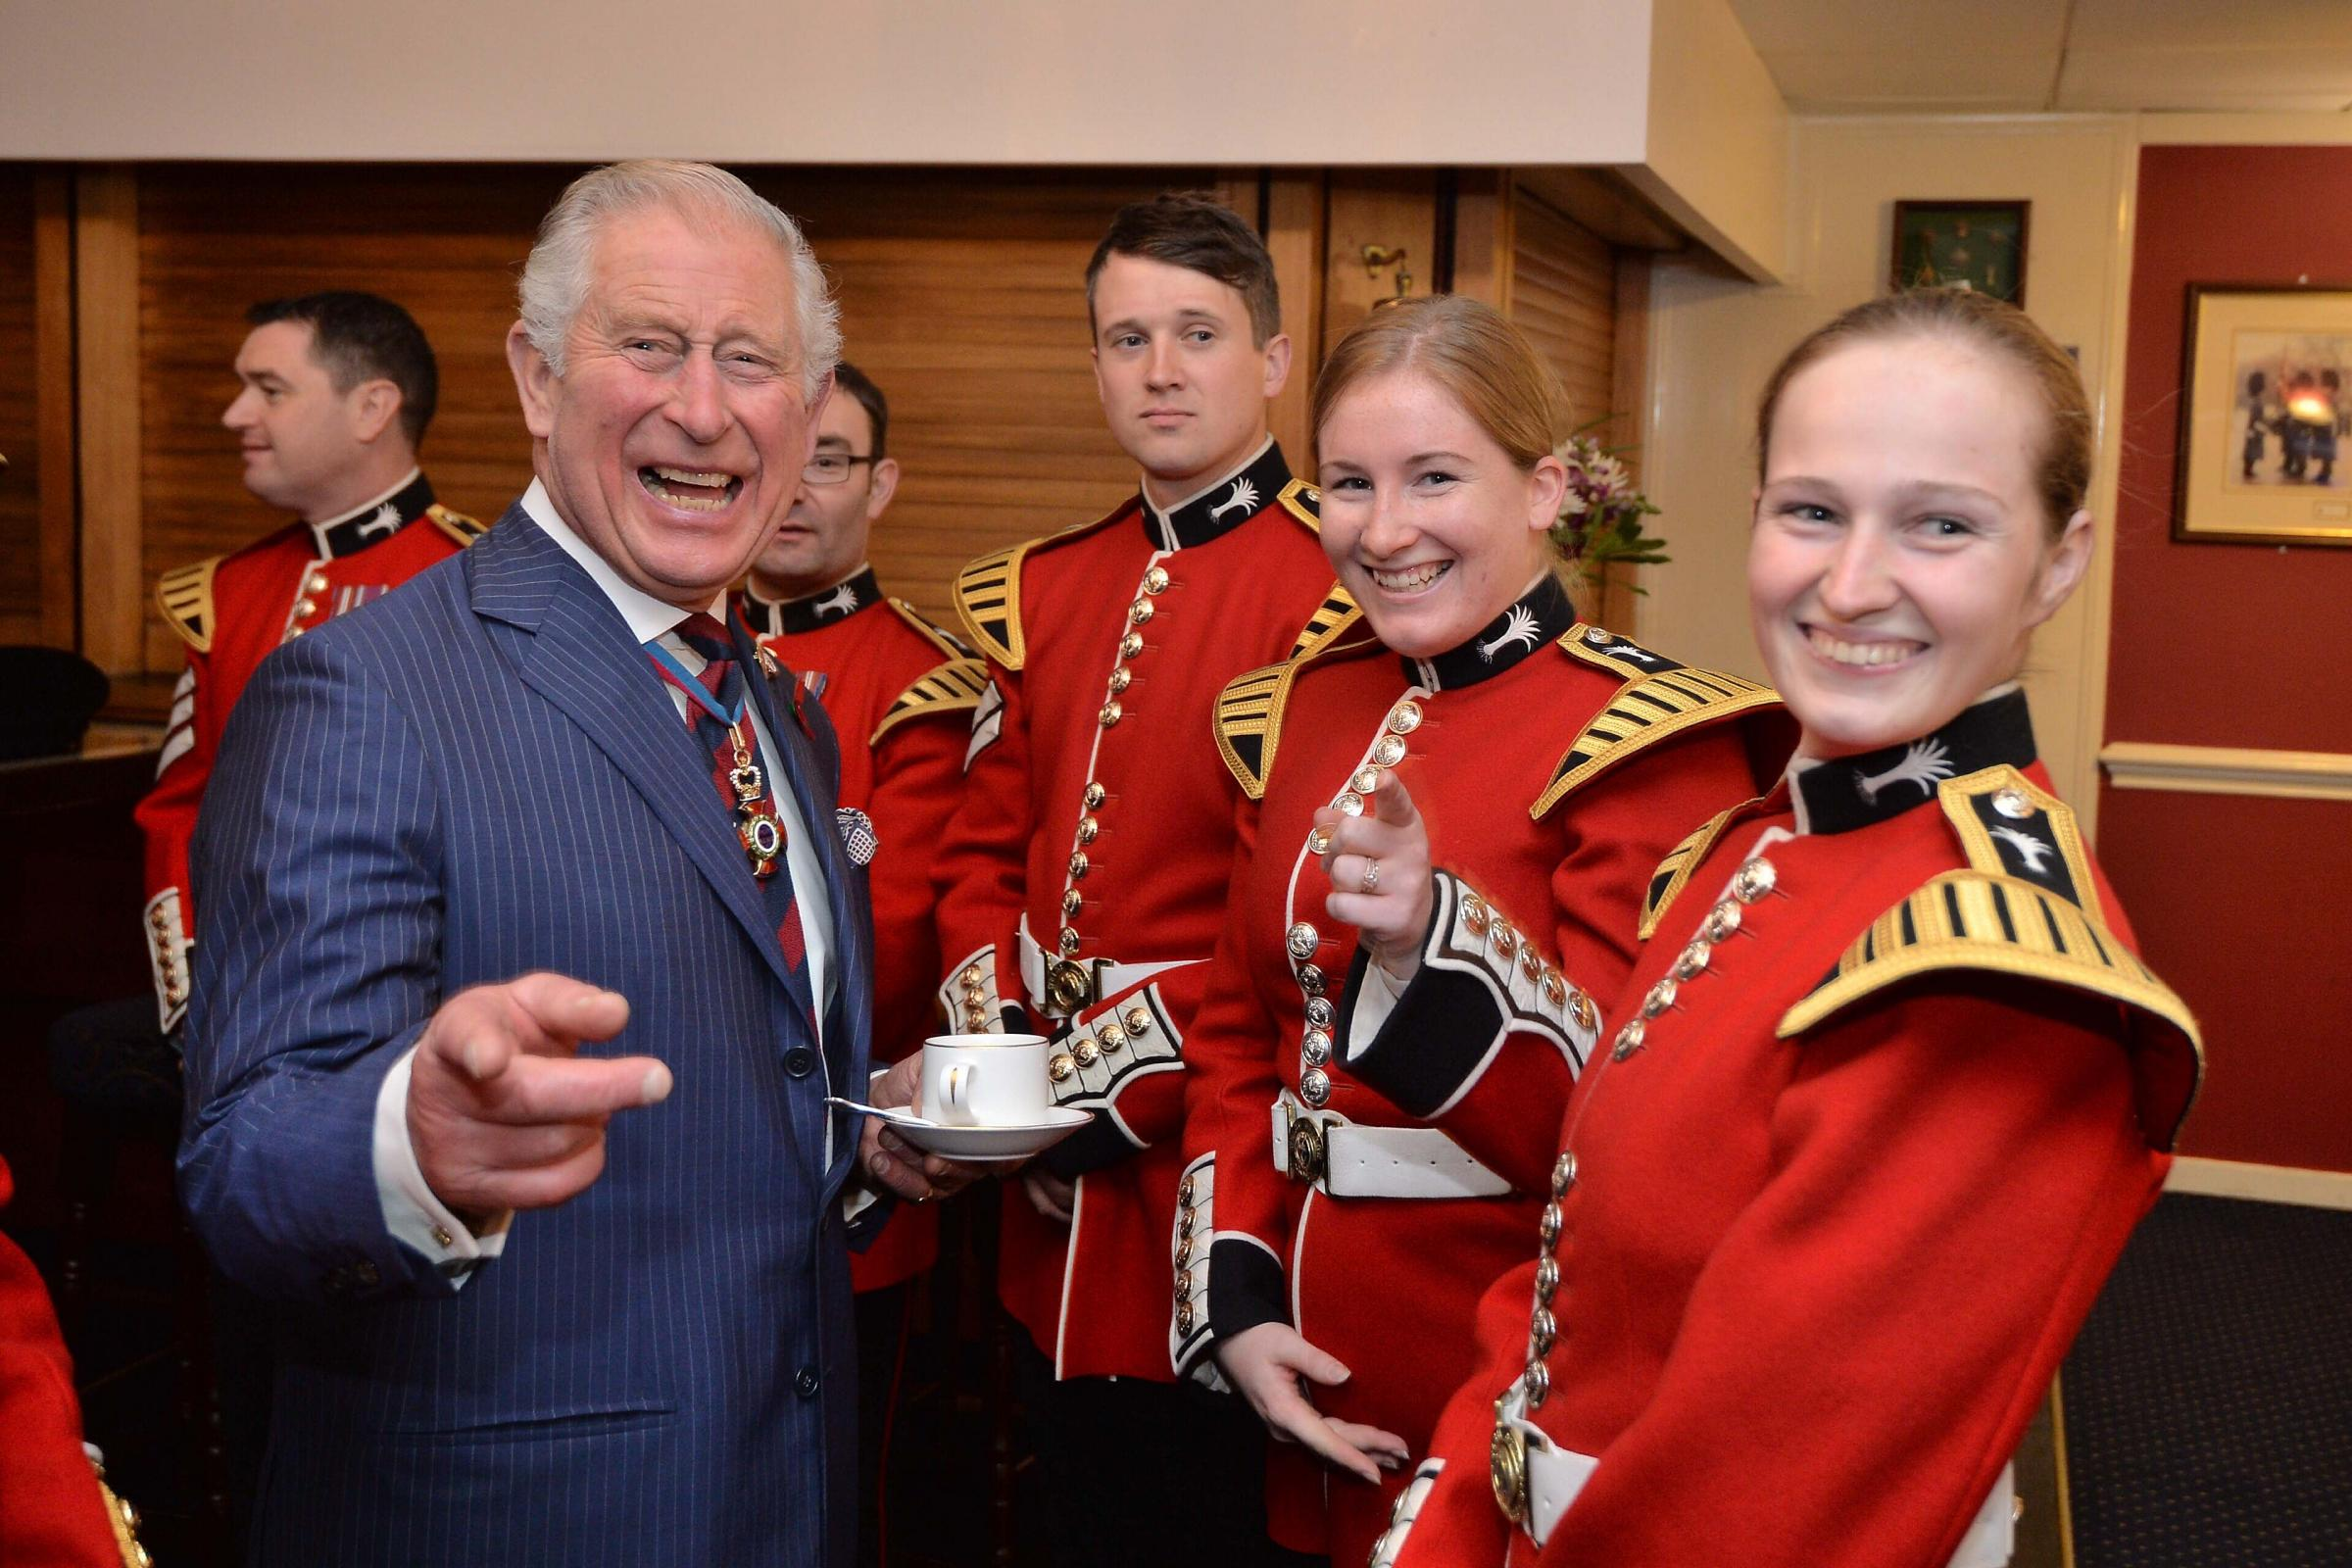 Birthday tributes paid to the Prince of Wales who 'refuses to be categorised'